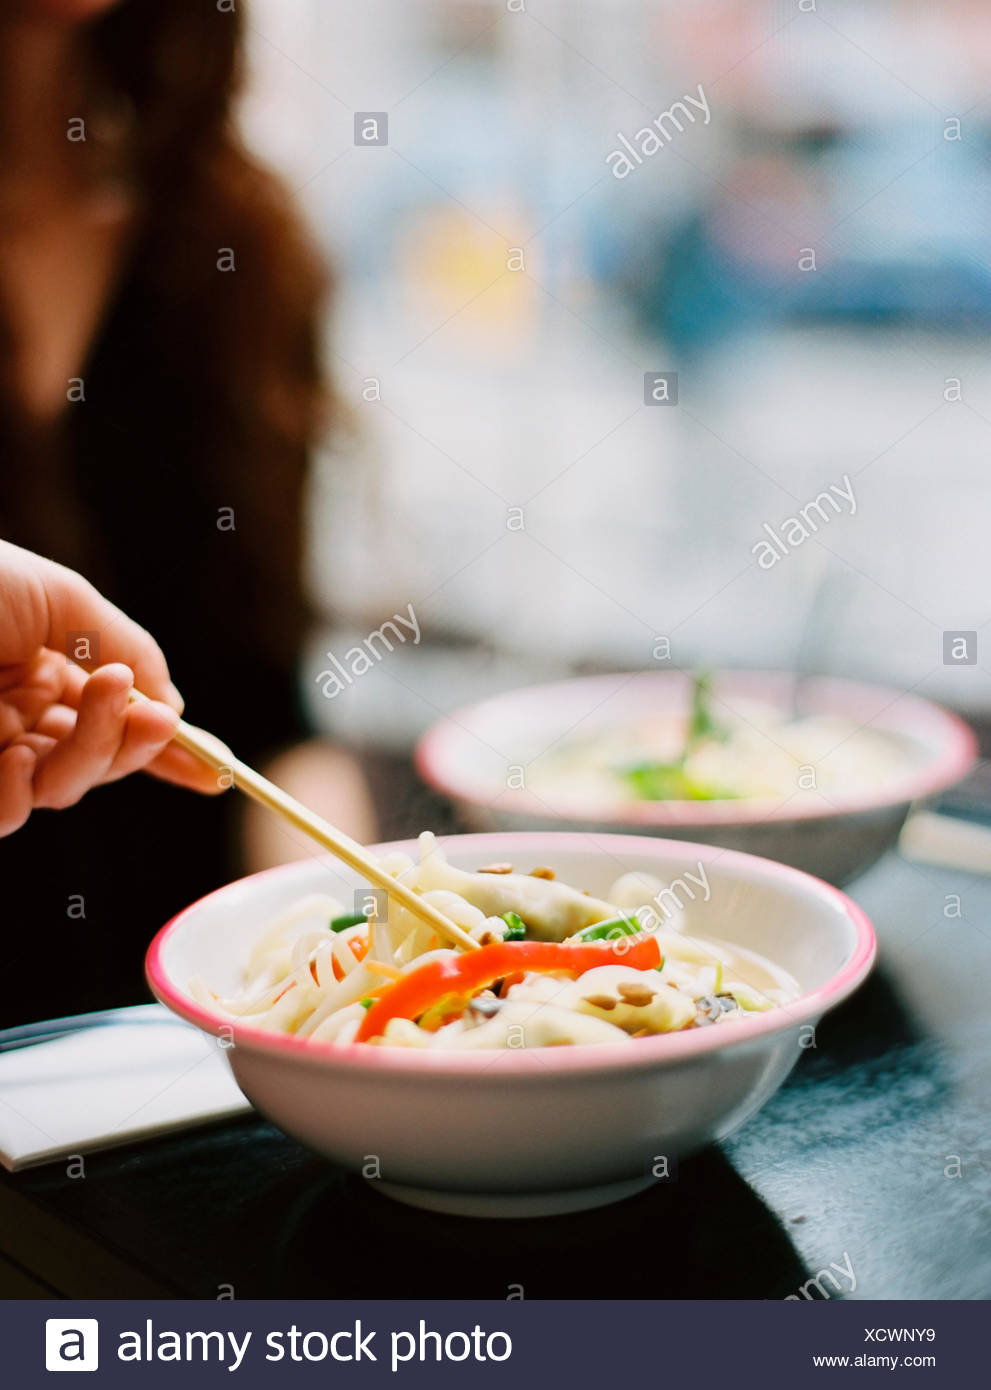 A person's hand holding chopsticks and stirring a dish of noodles. - Stock Image